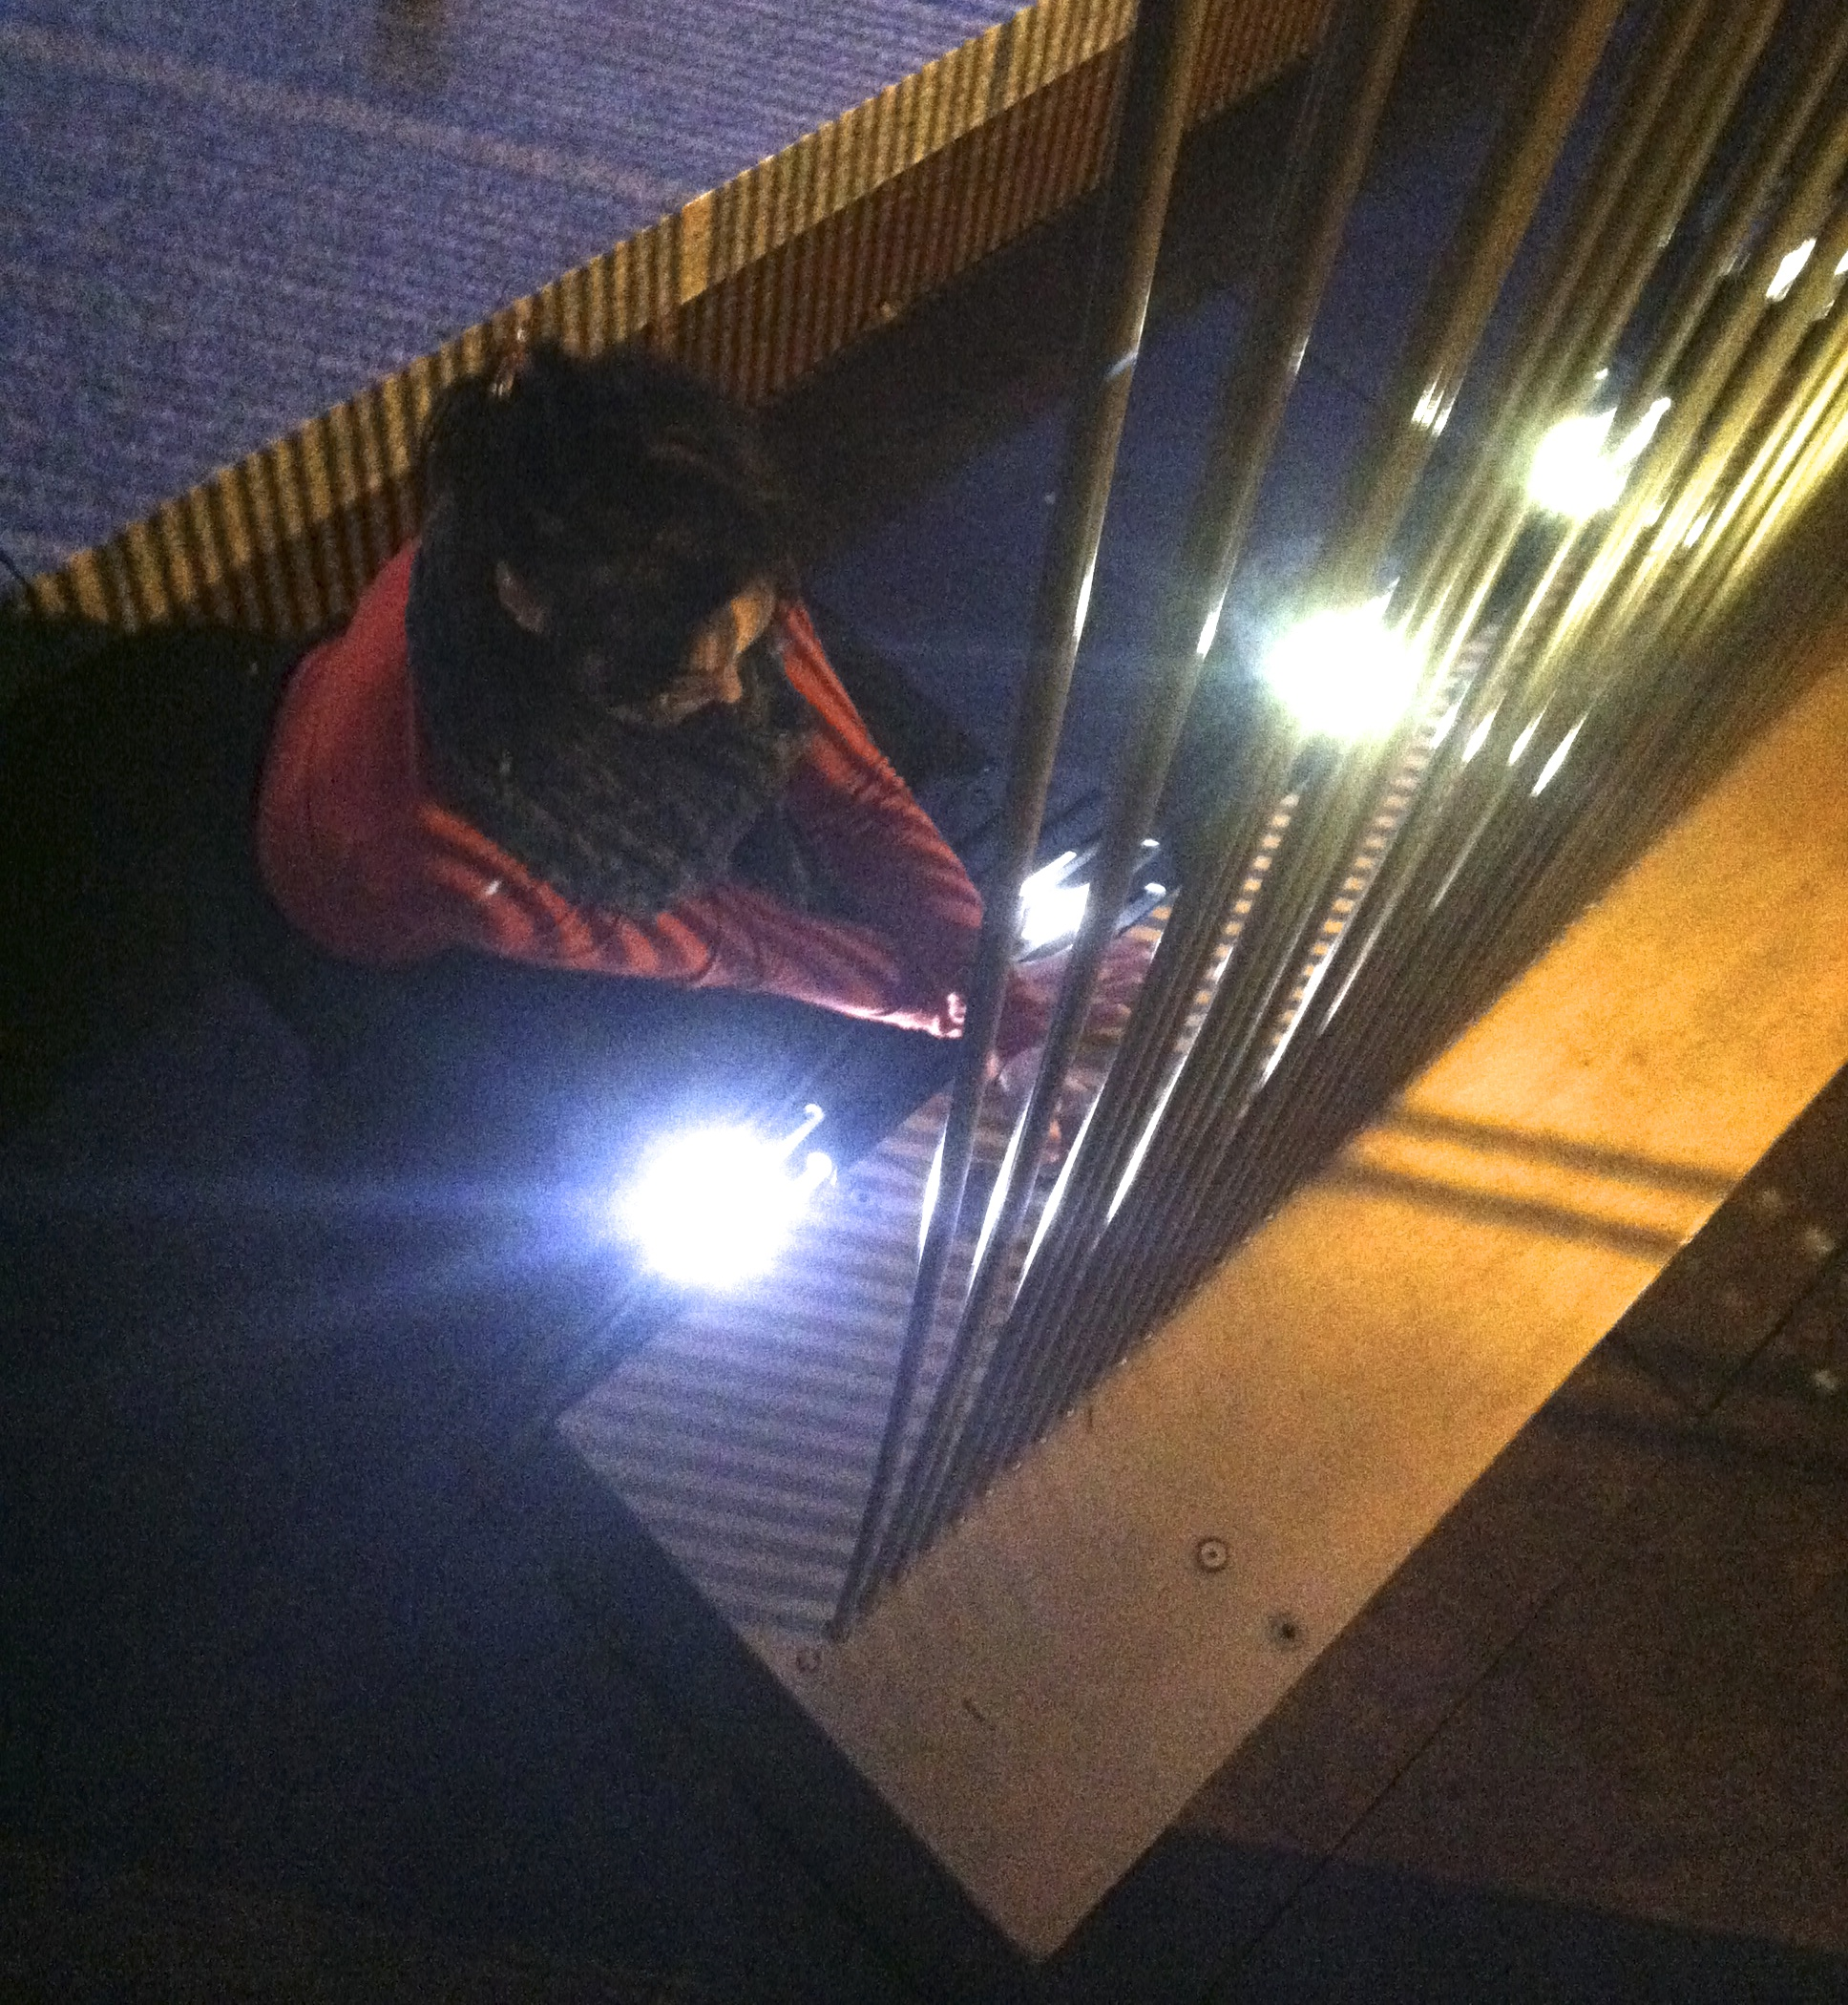 Caption: Olivia Block records a sound sculpture by Harry Bertoia in Chicago.